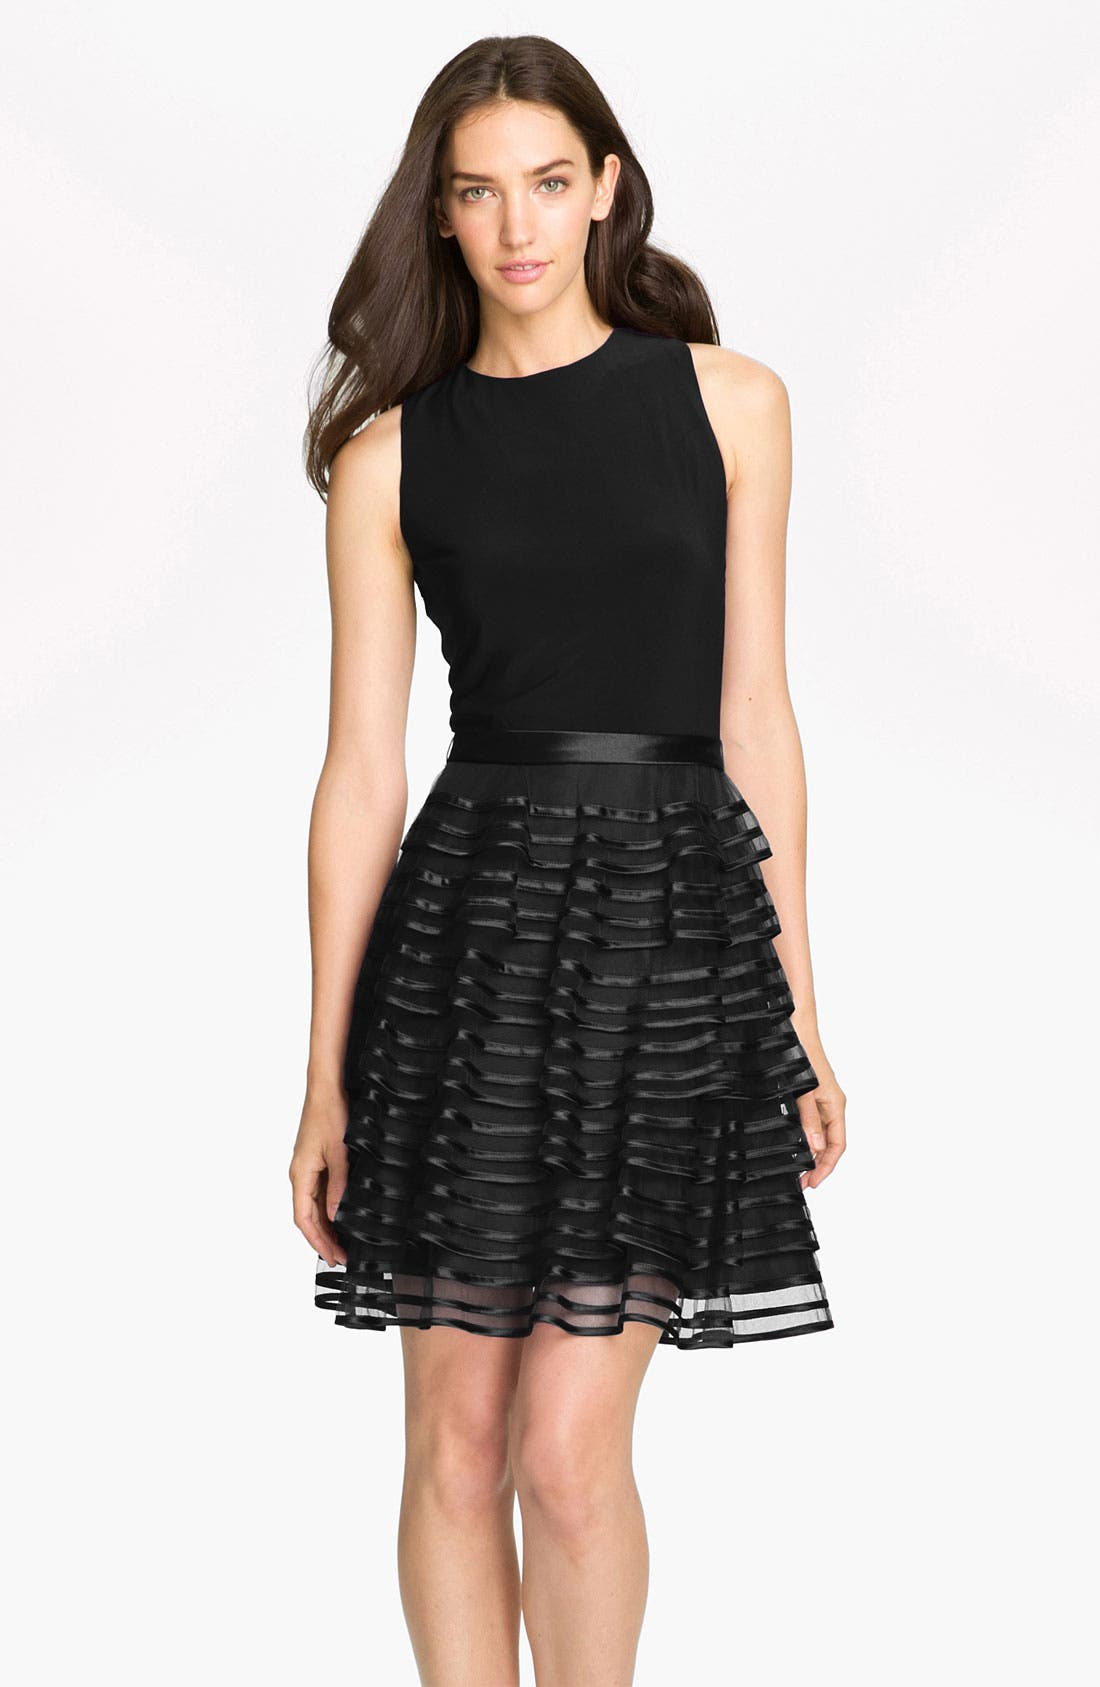 Main Image - Kathy Hilton Tiered Skirt Mixed Media Dress